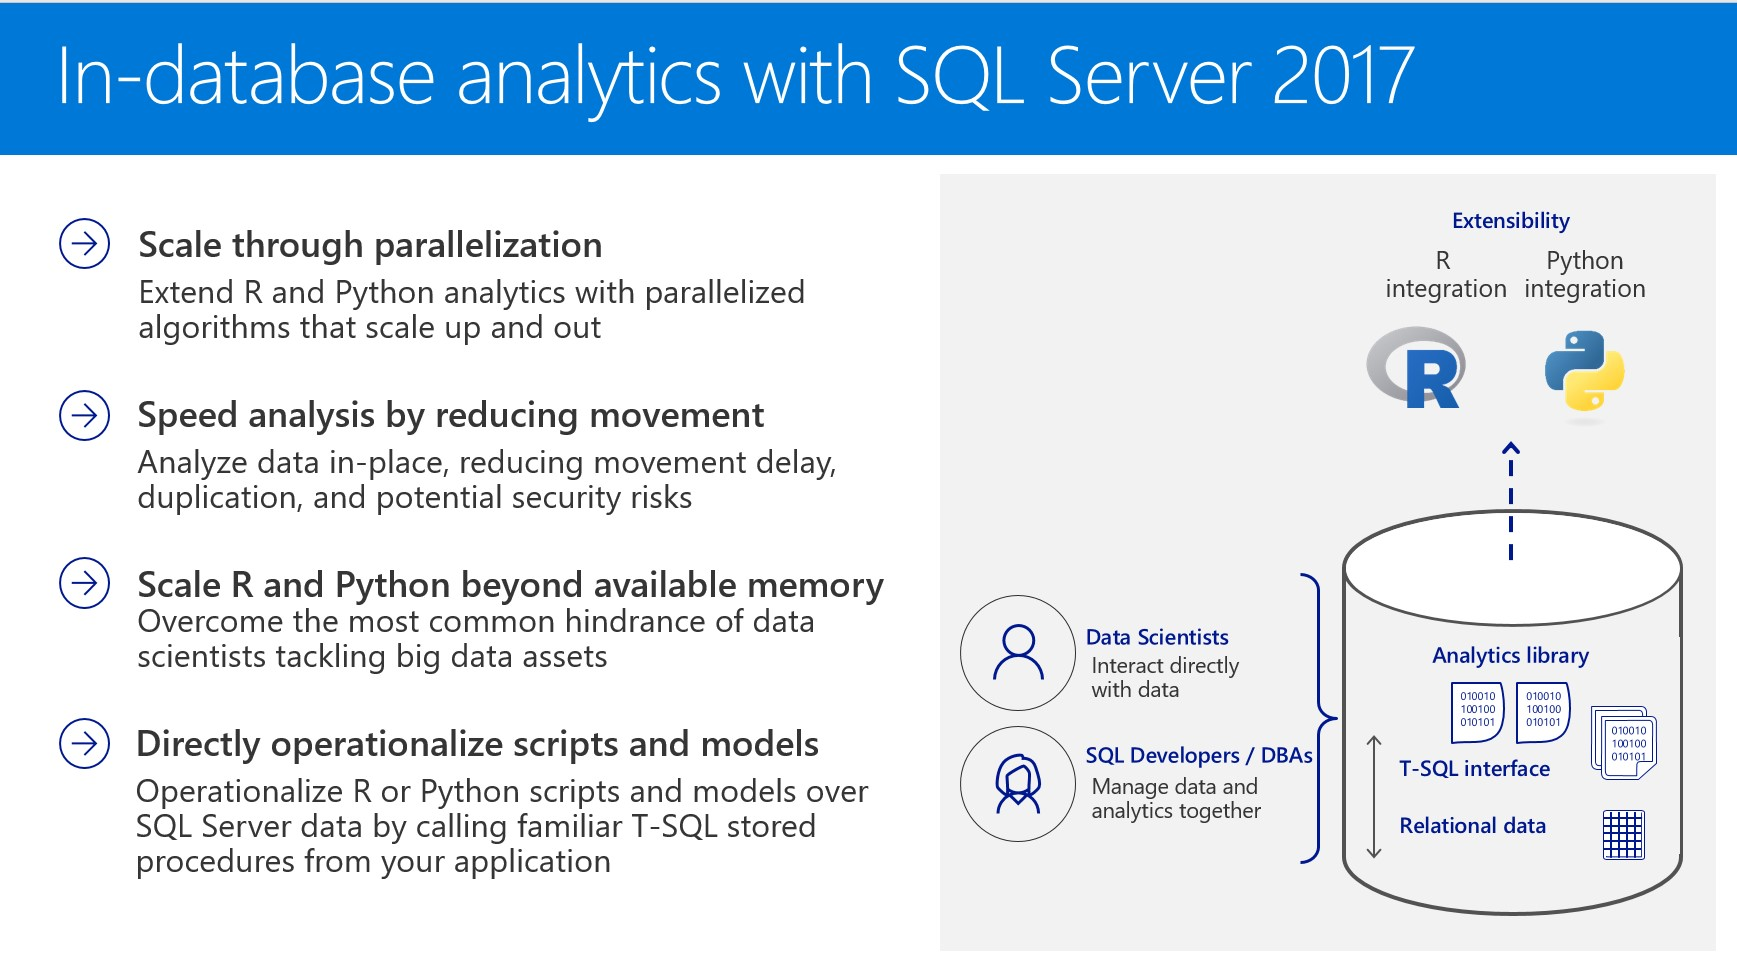 Sql Server 2017 Intelligent Database That Runs Anywhere And Application Security The Breadth Of Machine Learning Services Is Greatly Increased With Ability To Run Cutting Edge Deep Neural Networks In By Using